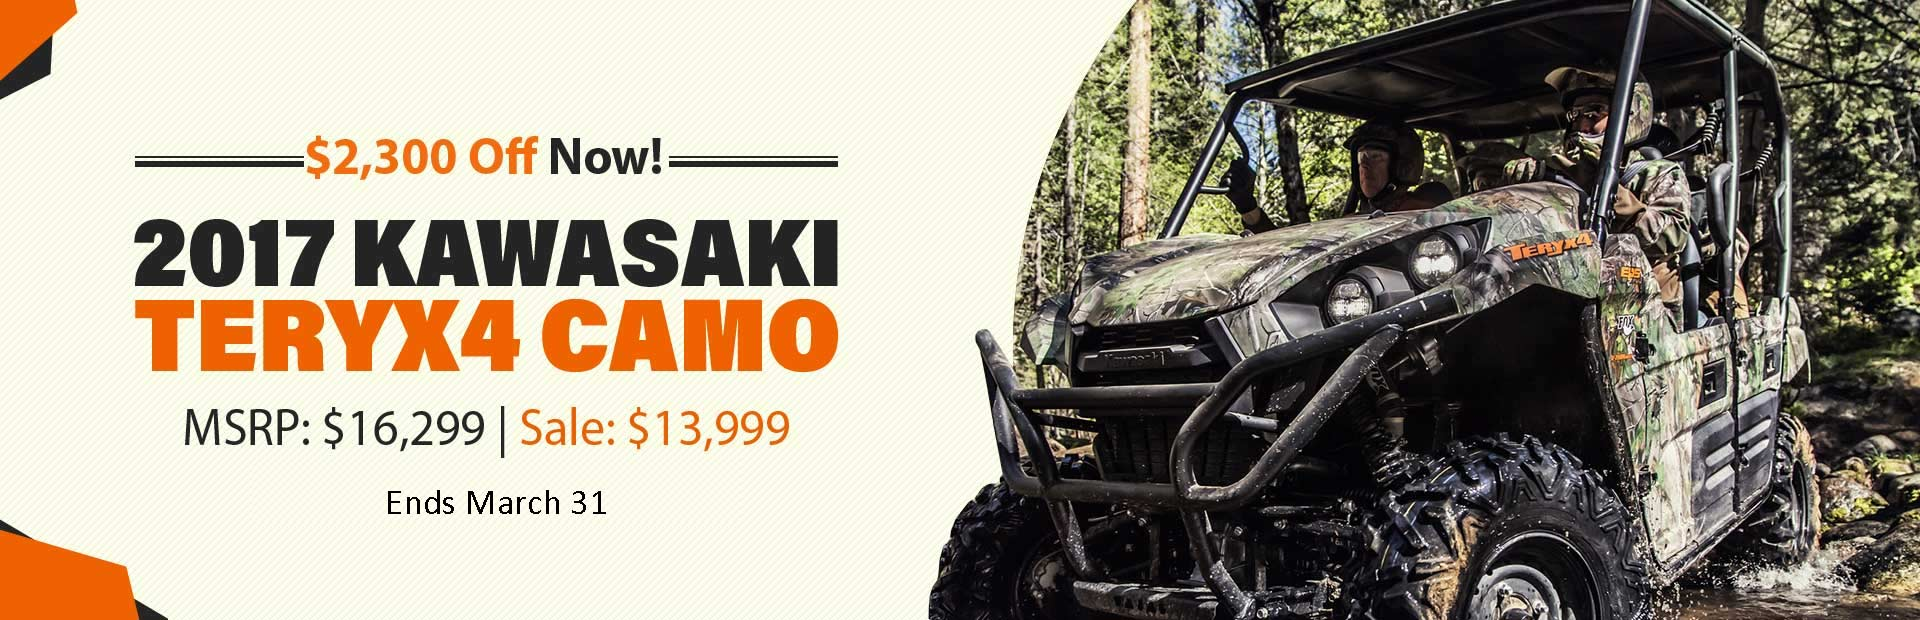 Get $1,300 off the 2017 Kawasaki Teryx4 Camo! This offer ends September 30th.